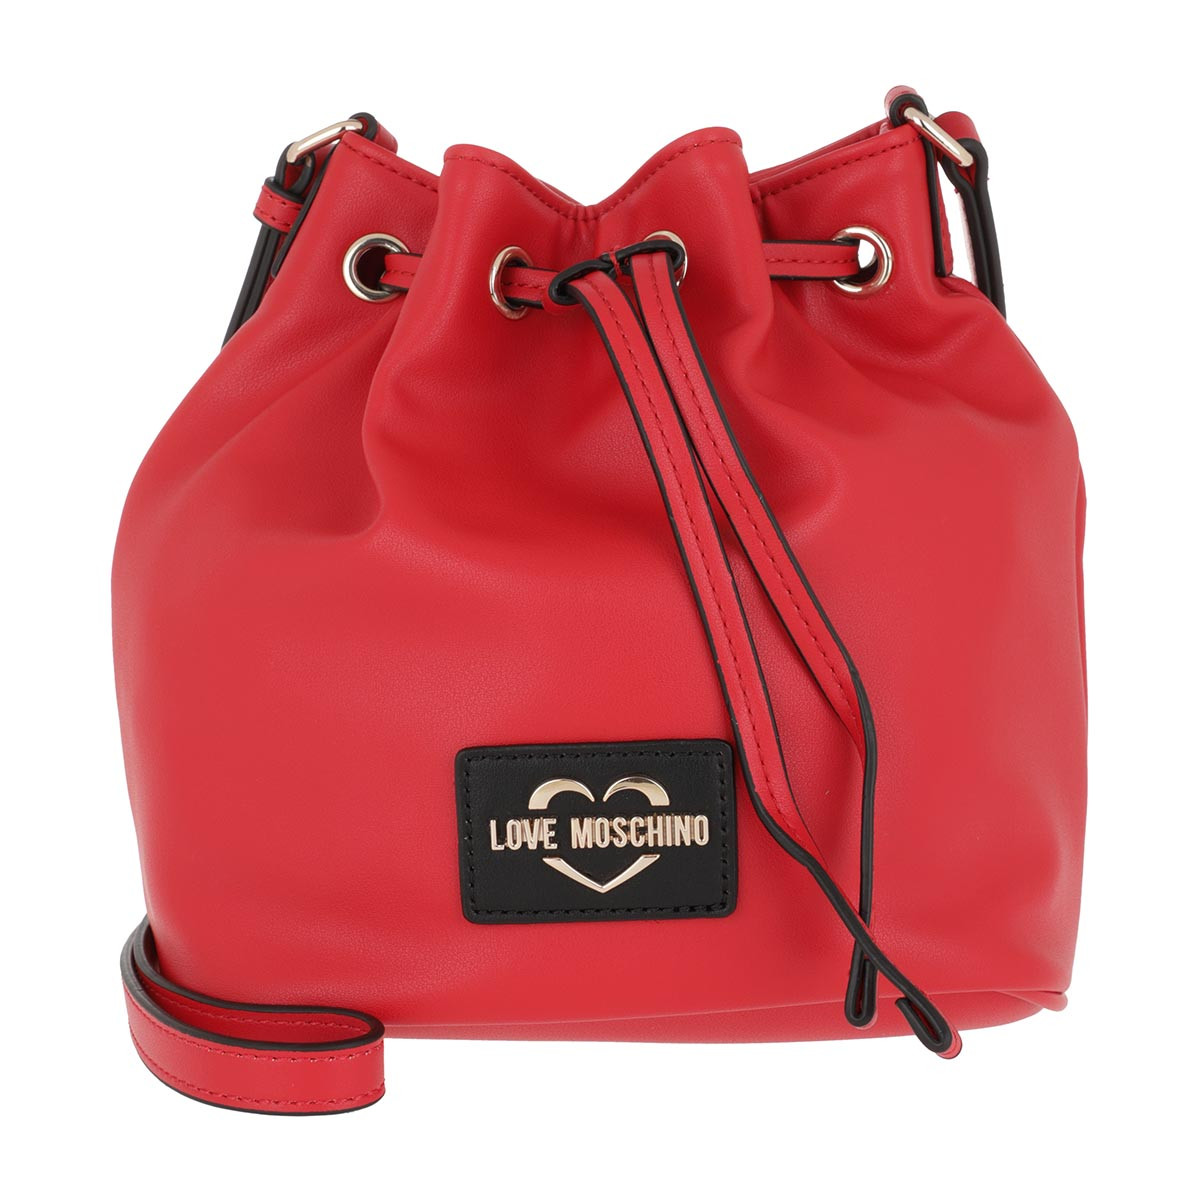 Love Moschino Beuteltasche - Drawstring Tassel Bag Rosso - in rot - für Damen